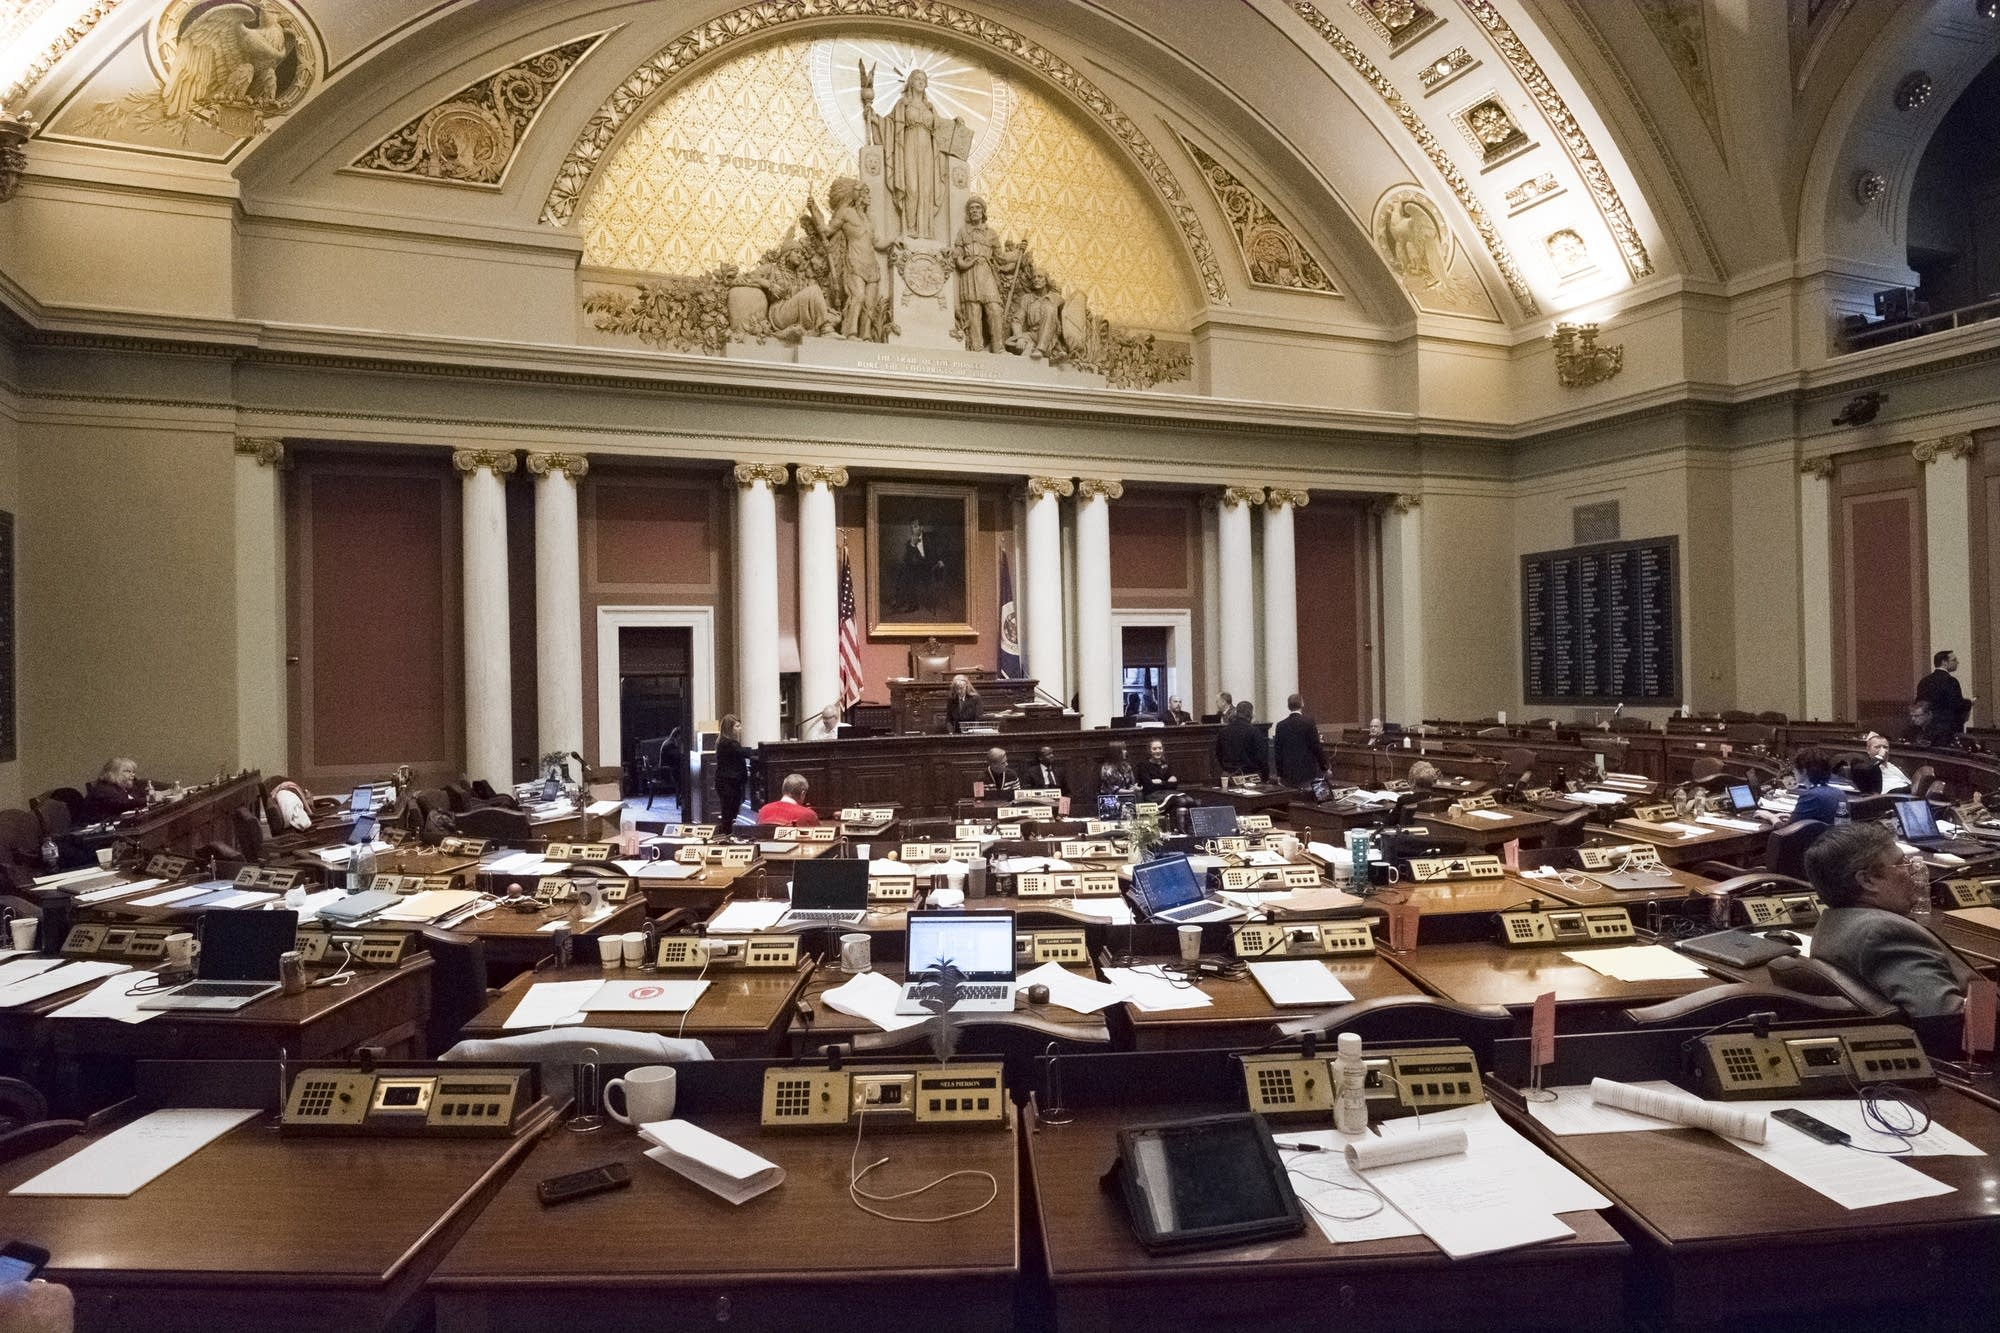 The Minnesota House sits nearly empty.